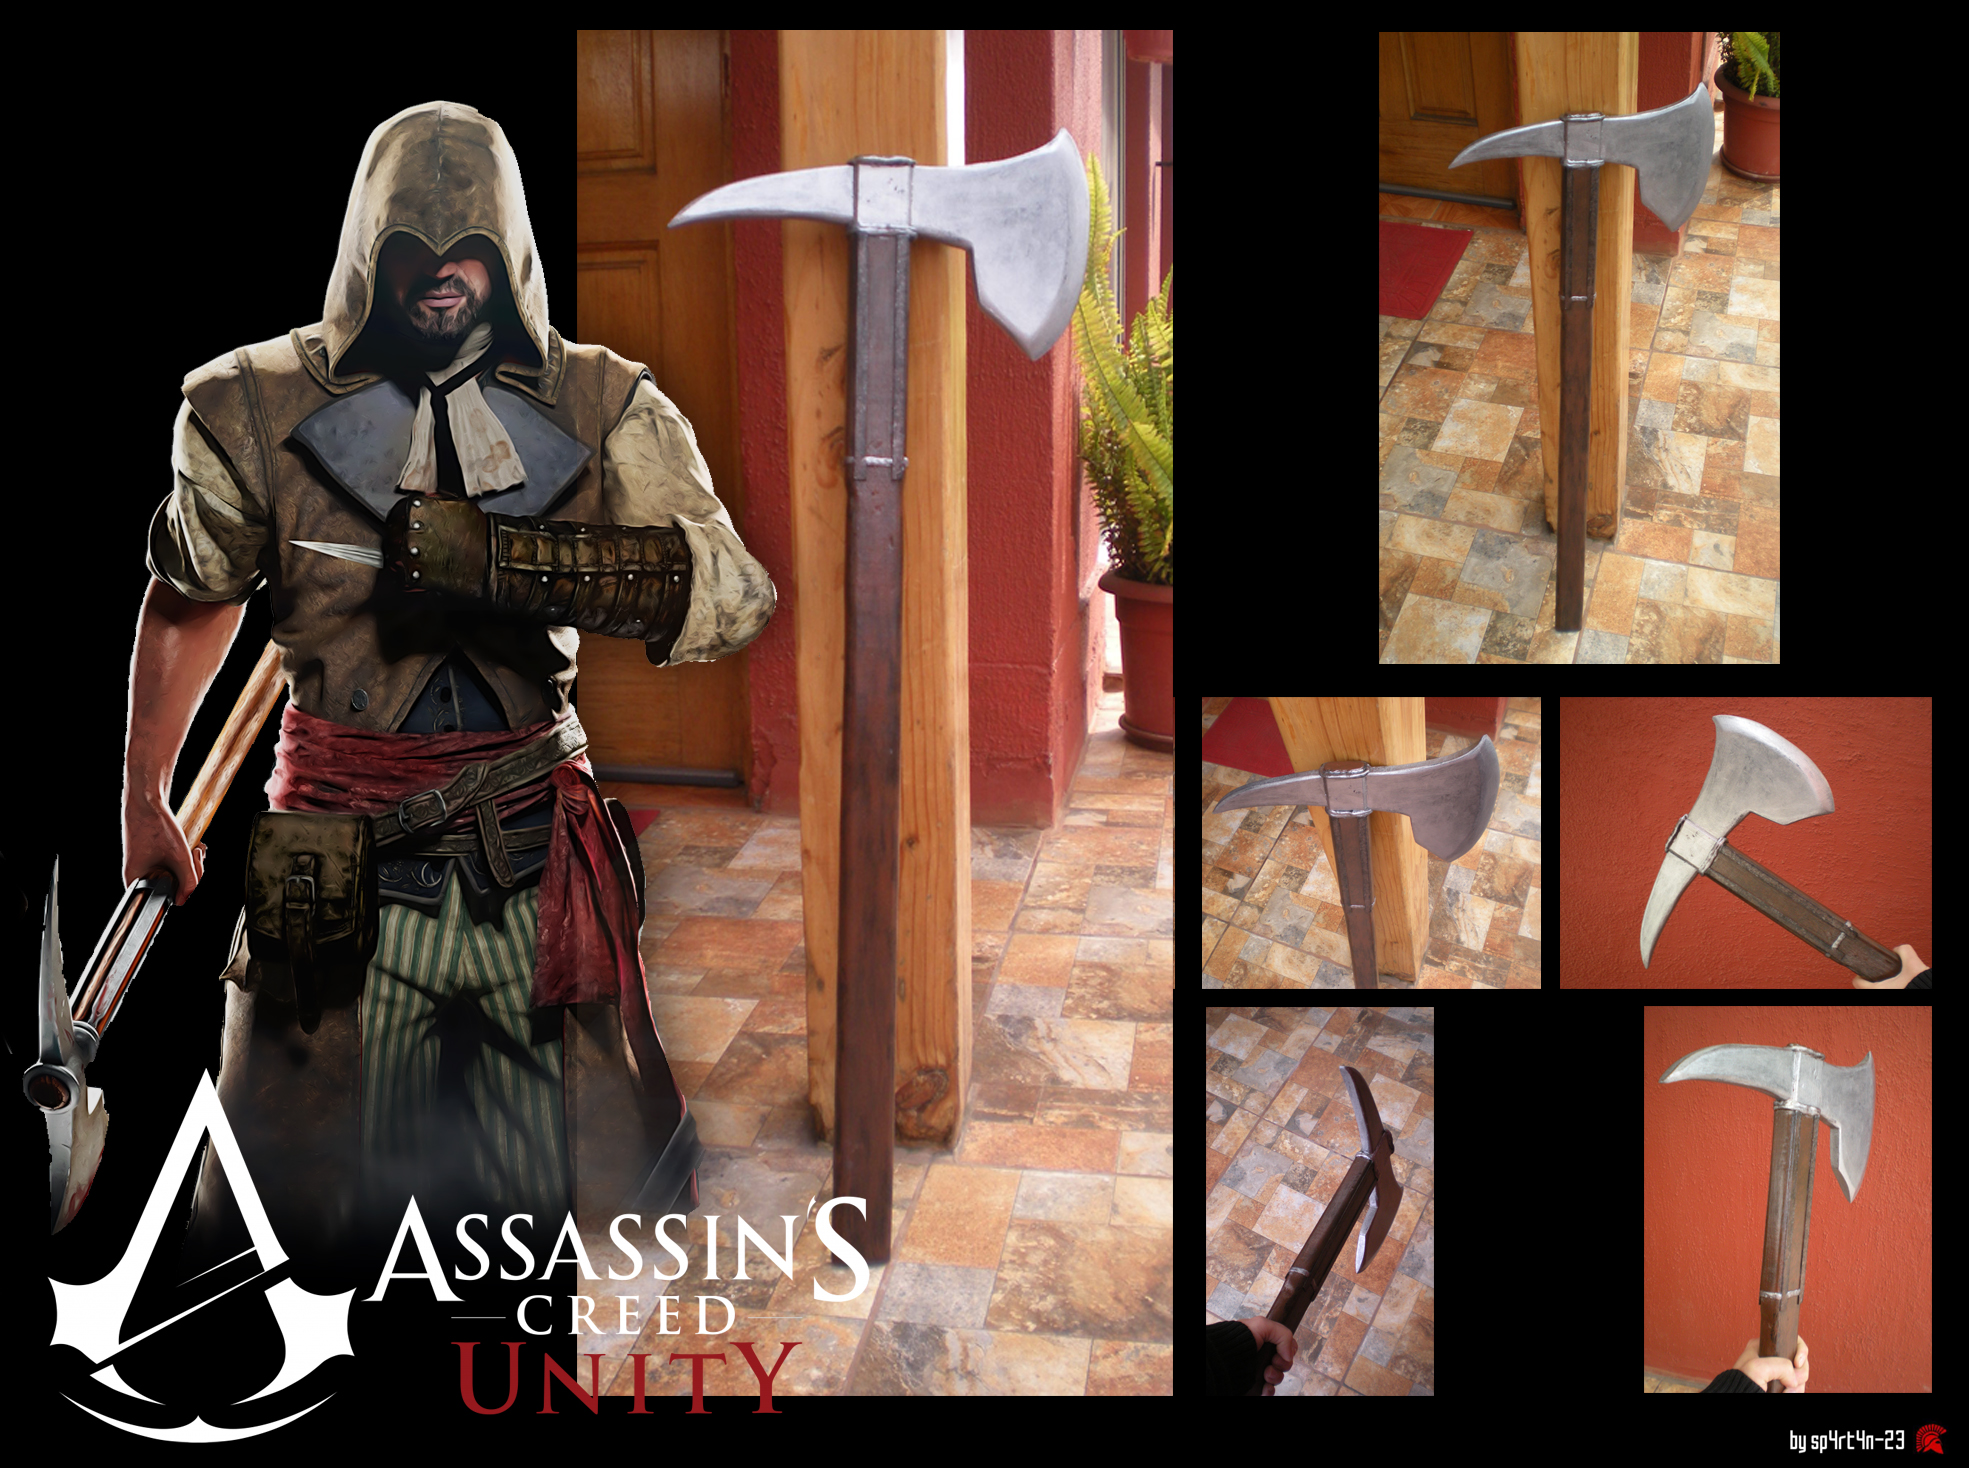 Assassins Creed Unity Axe By Sp4rt4n 23 On Deviantart